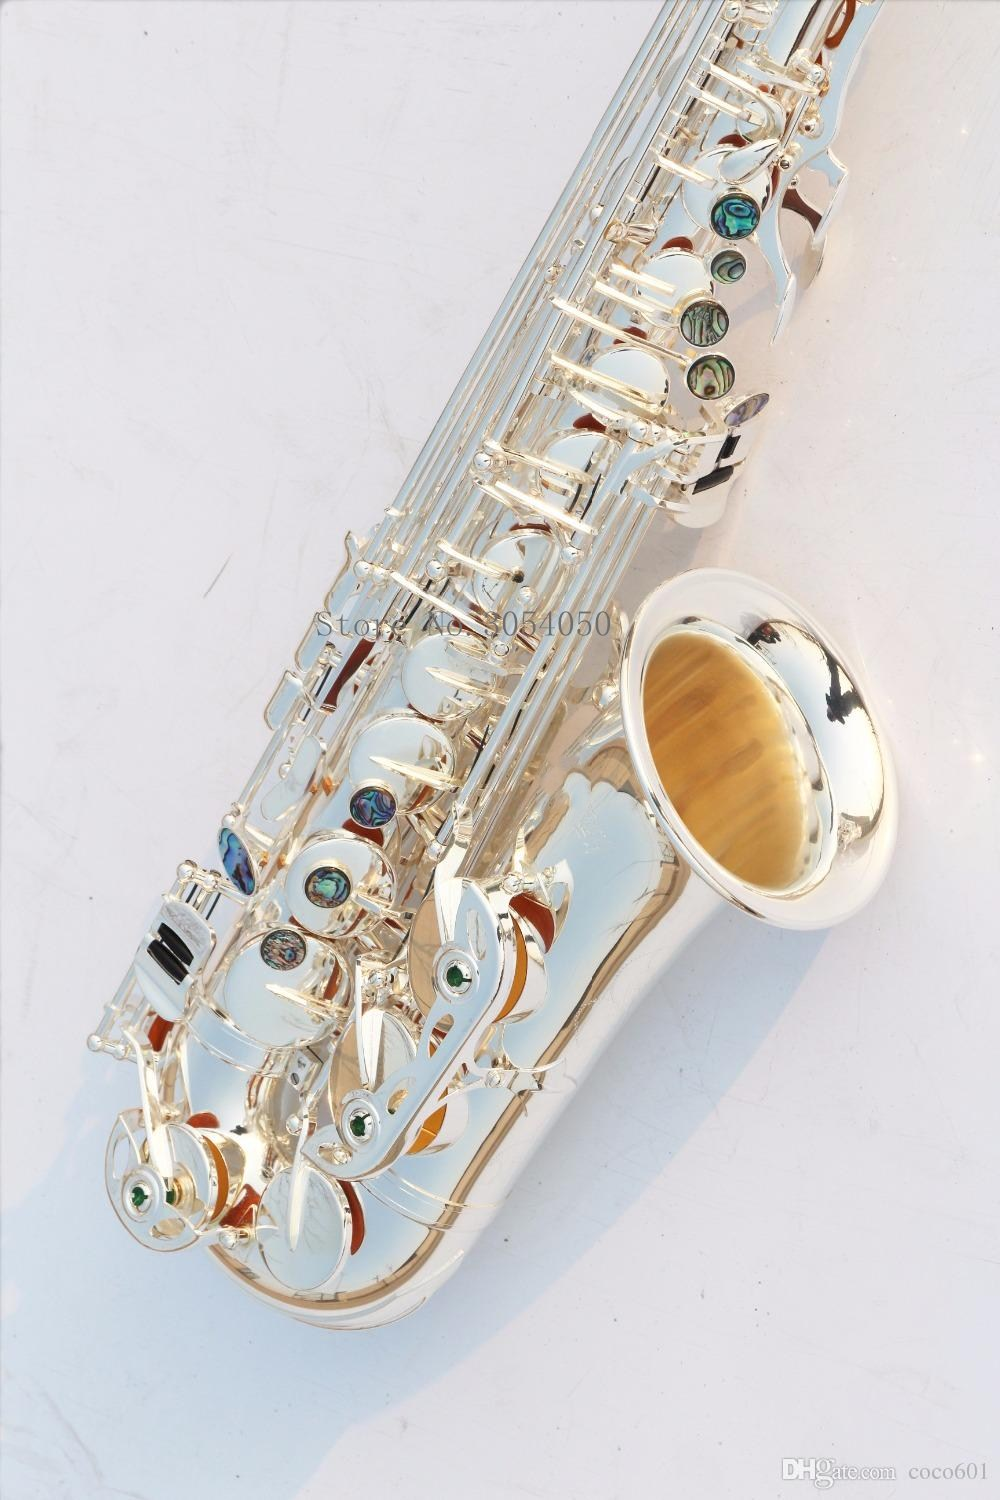 New Japanese YANAGISAWA New A-902 E-flat Alto saxophone Music Instrument Silver Plated Sax Professional level Free Shipping free shipping new high quality tenor saxophone france r54 b flat black gold nickel professional musical instruments